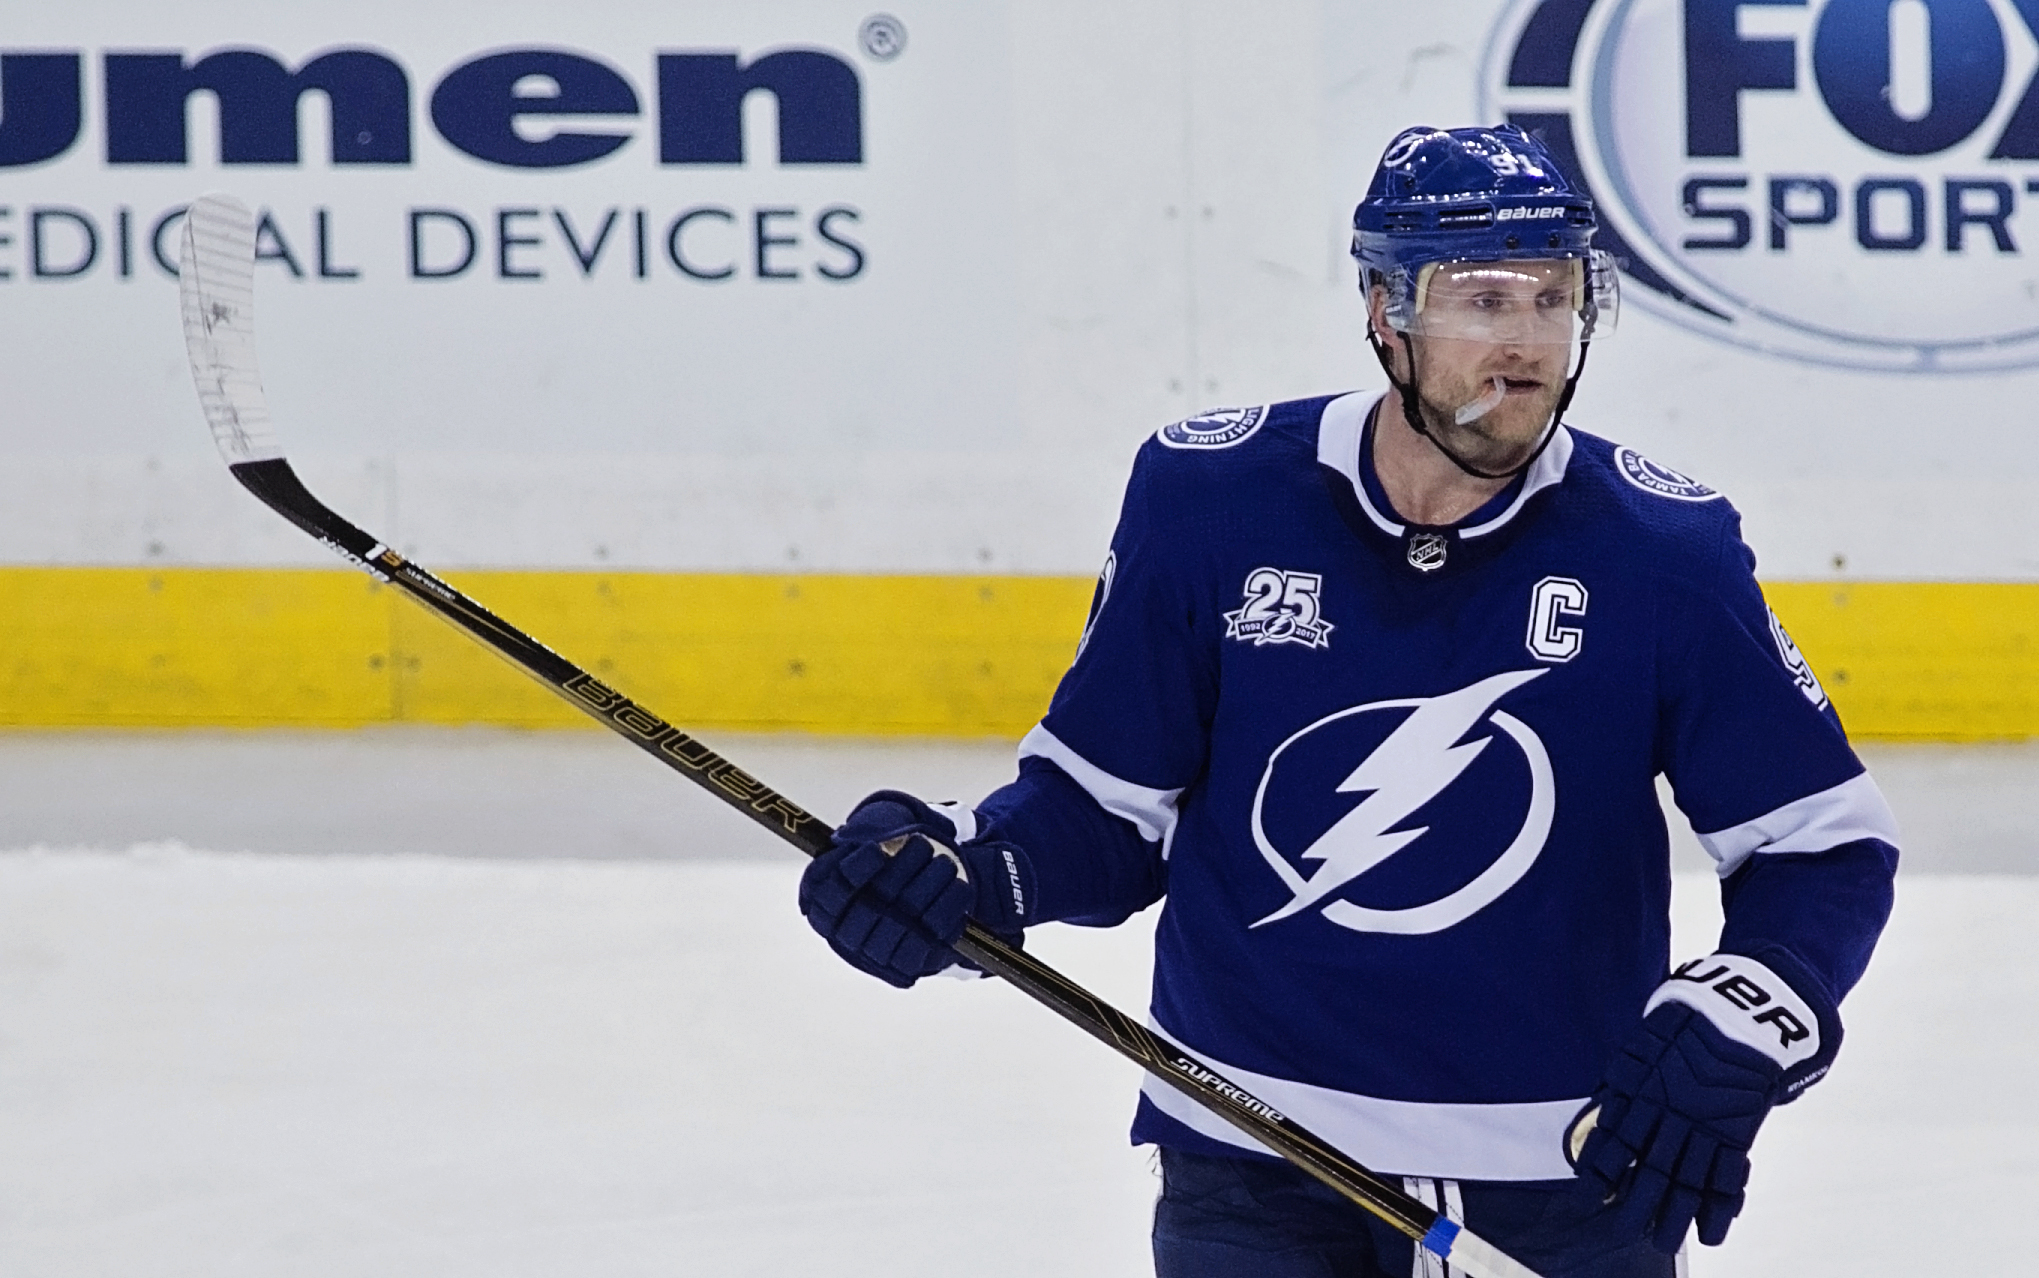 Stamkos scored the tying goal with 2:12 left to play.